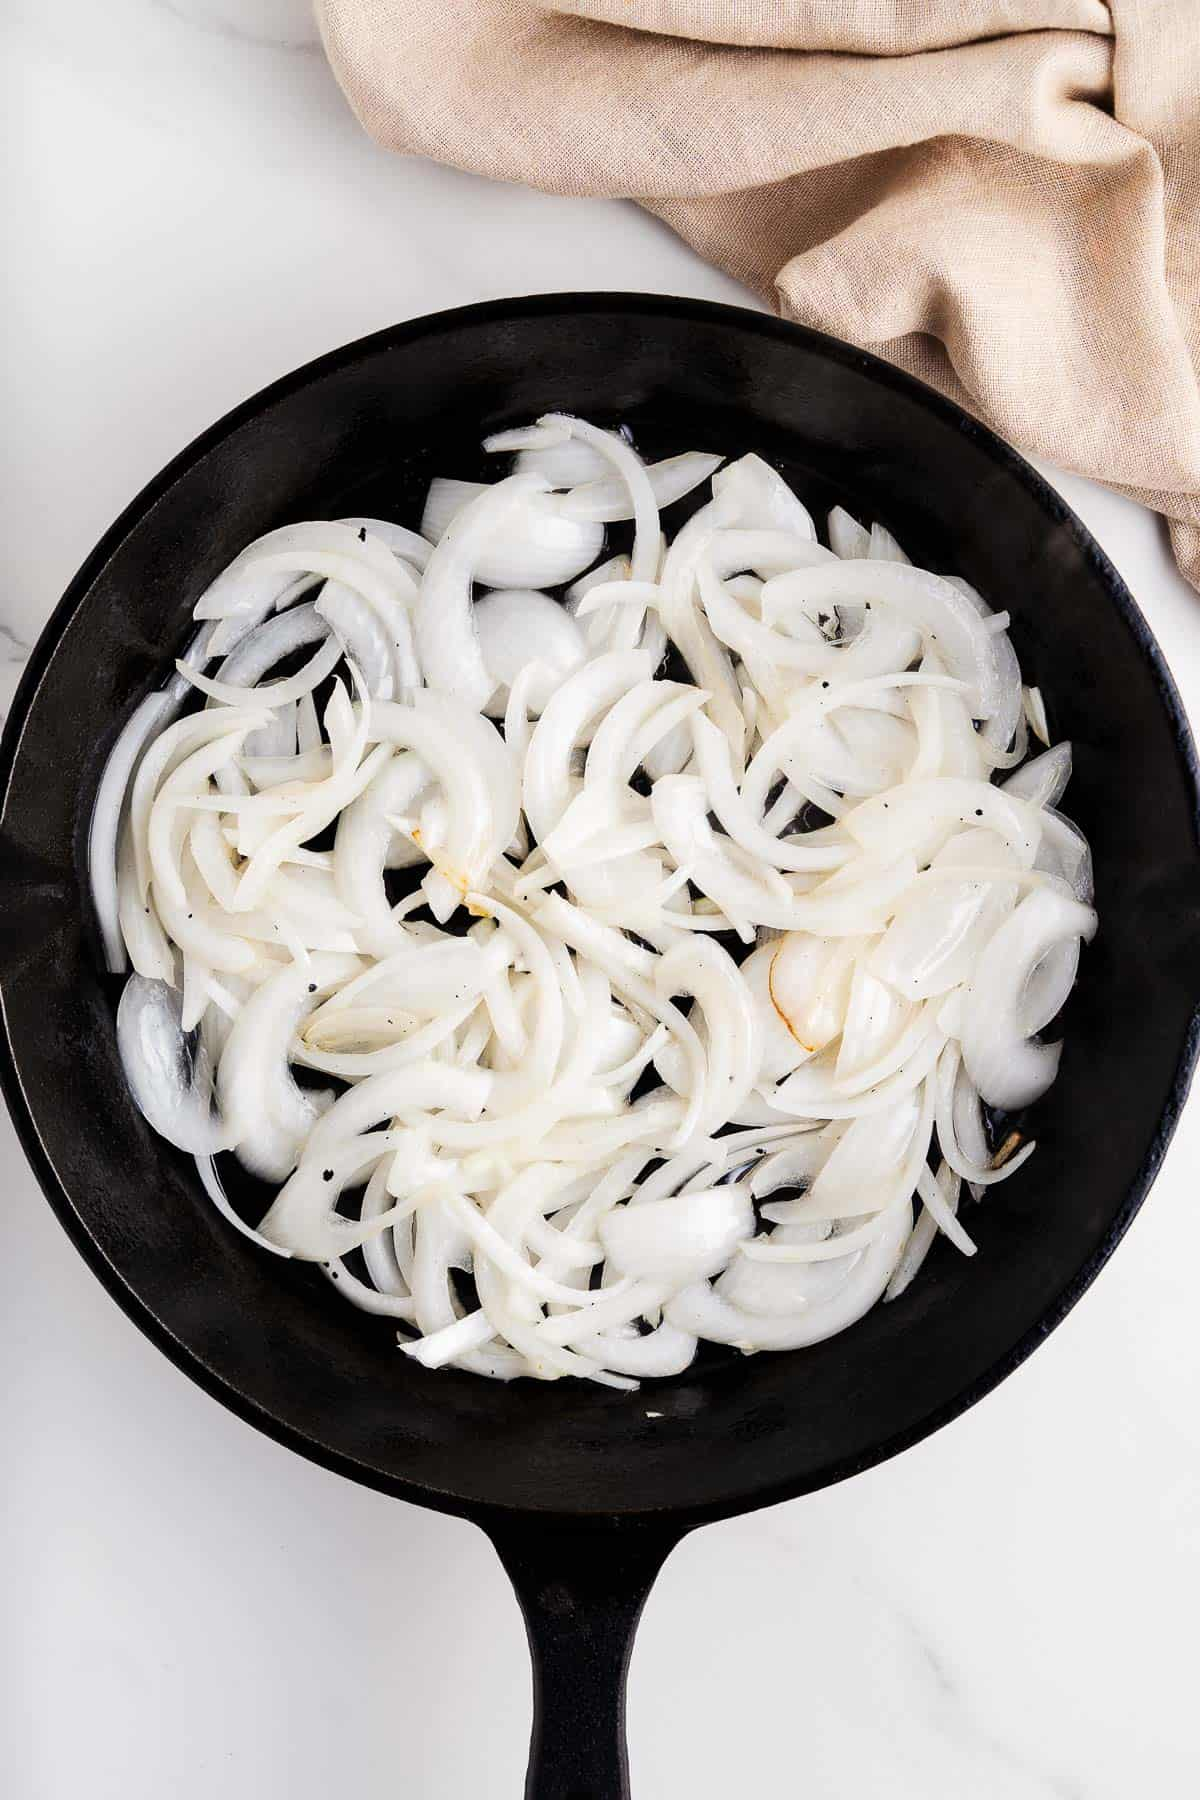 Sautéed White Onions in a Skillet